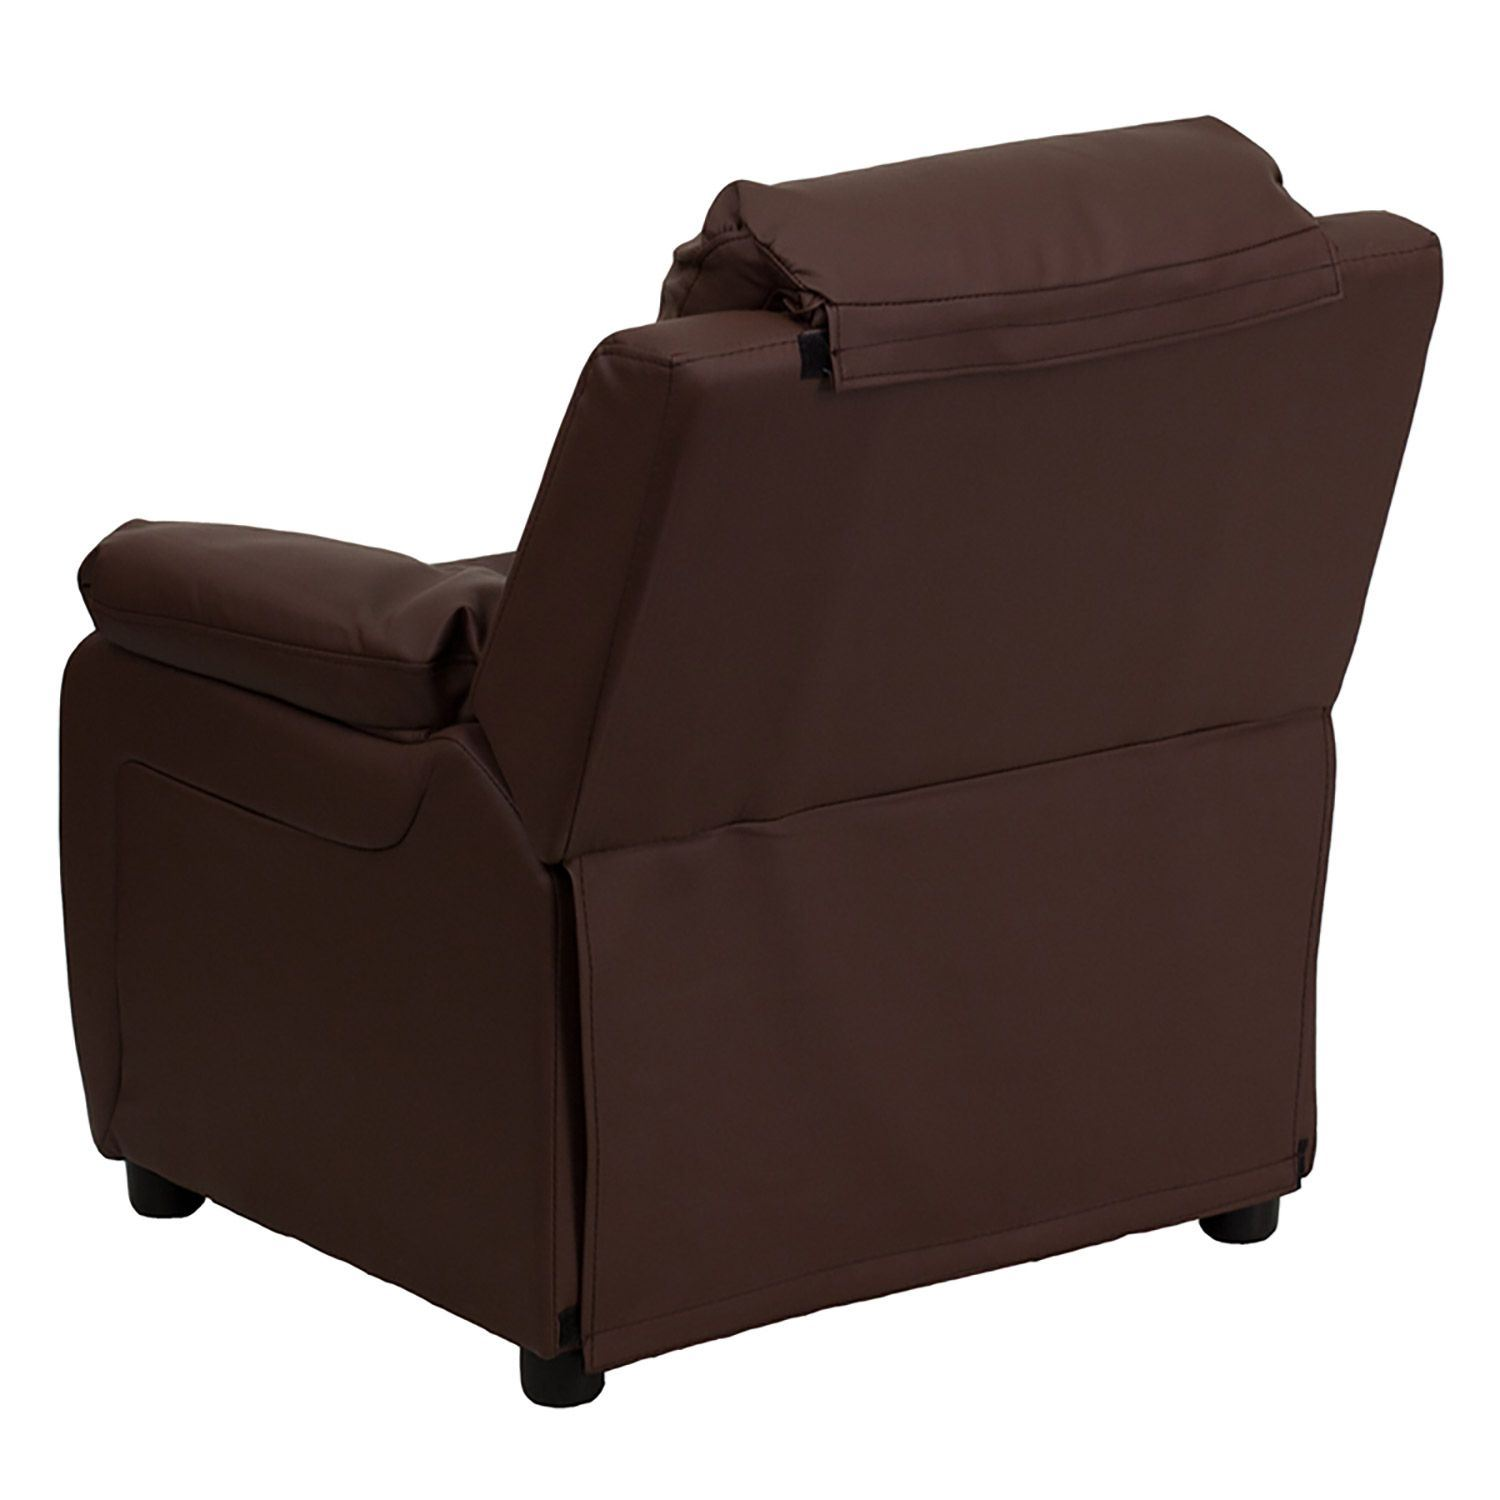 Personalized deluxe brown leather kids recliner d bt for Personalized kids soft chairs